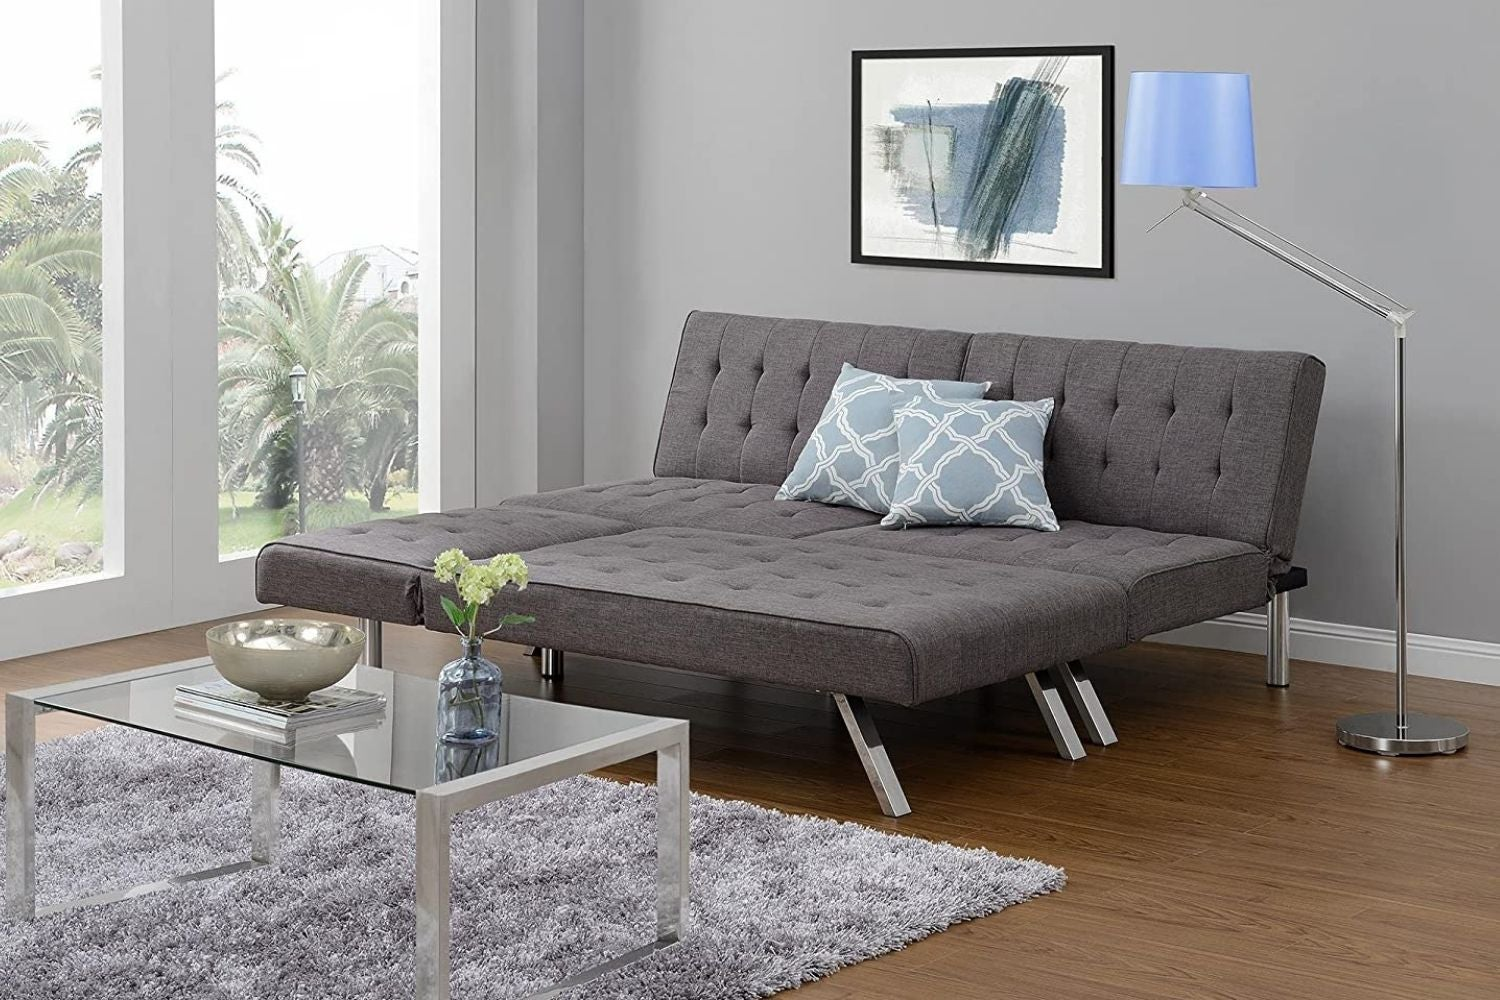 The Best Futon Options For Overnight Guests Bob Vila